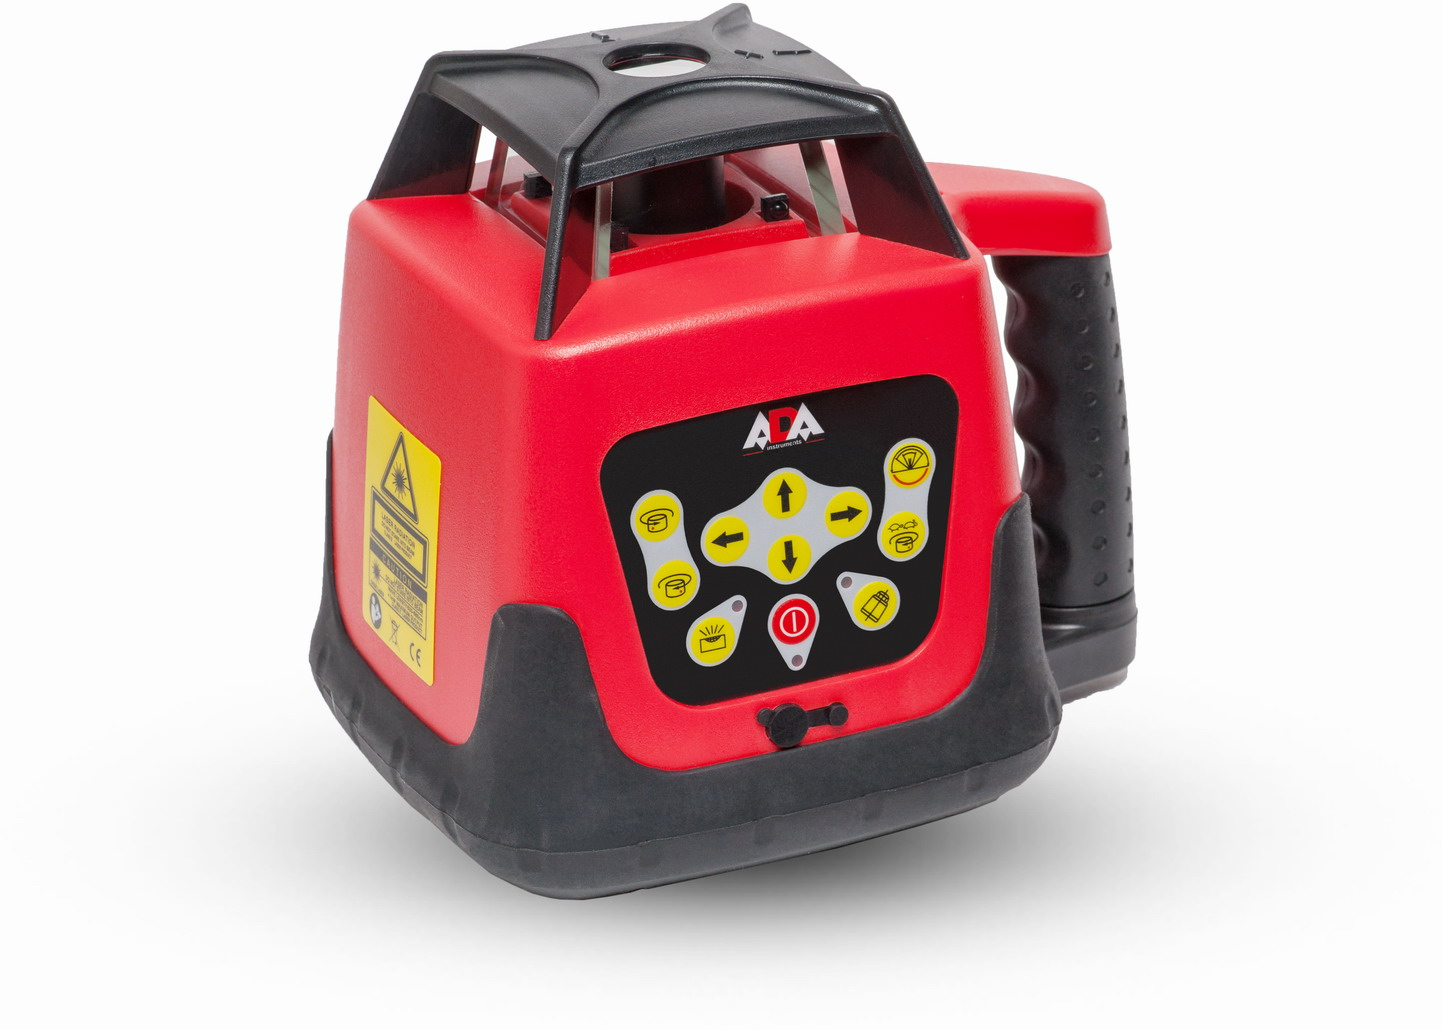 Laser level ADA ROTARY 500 HV